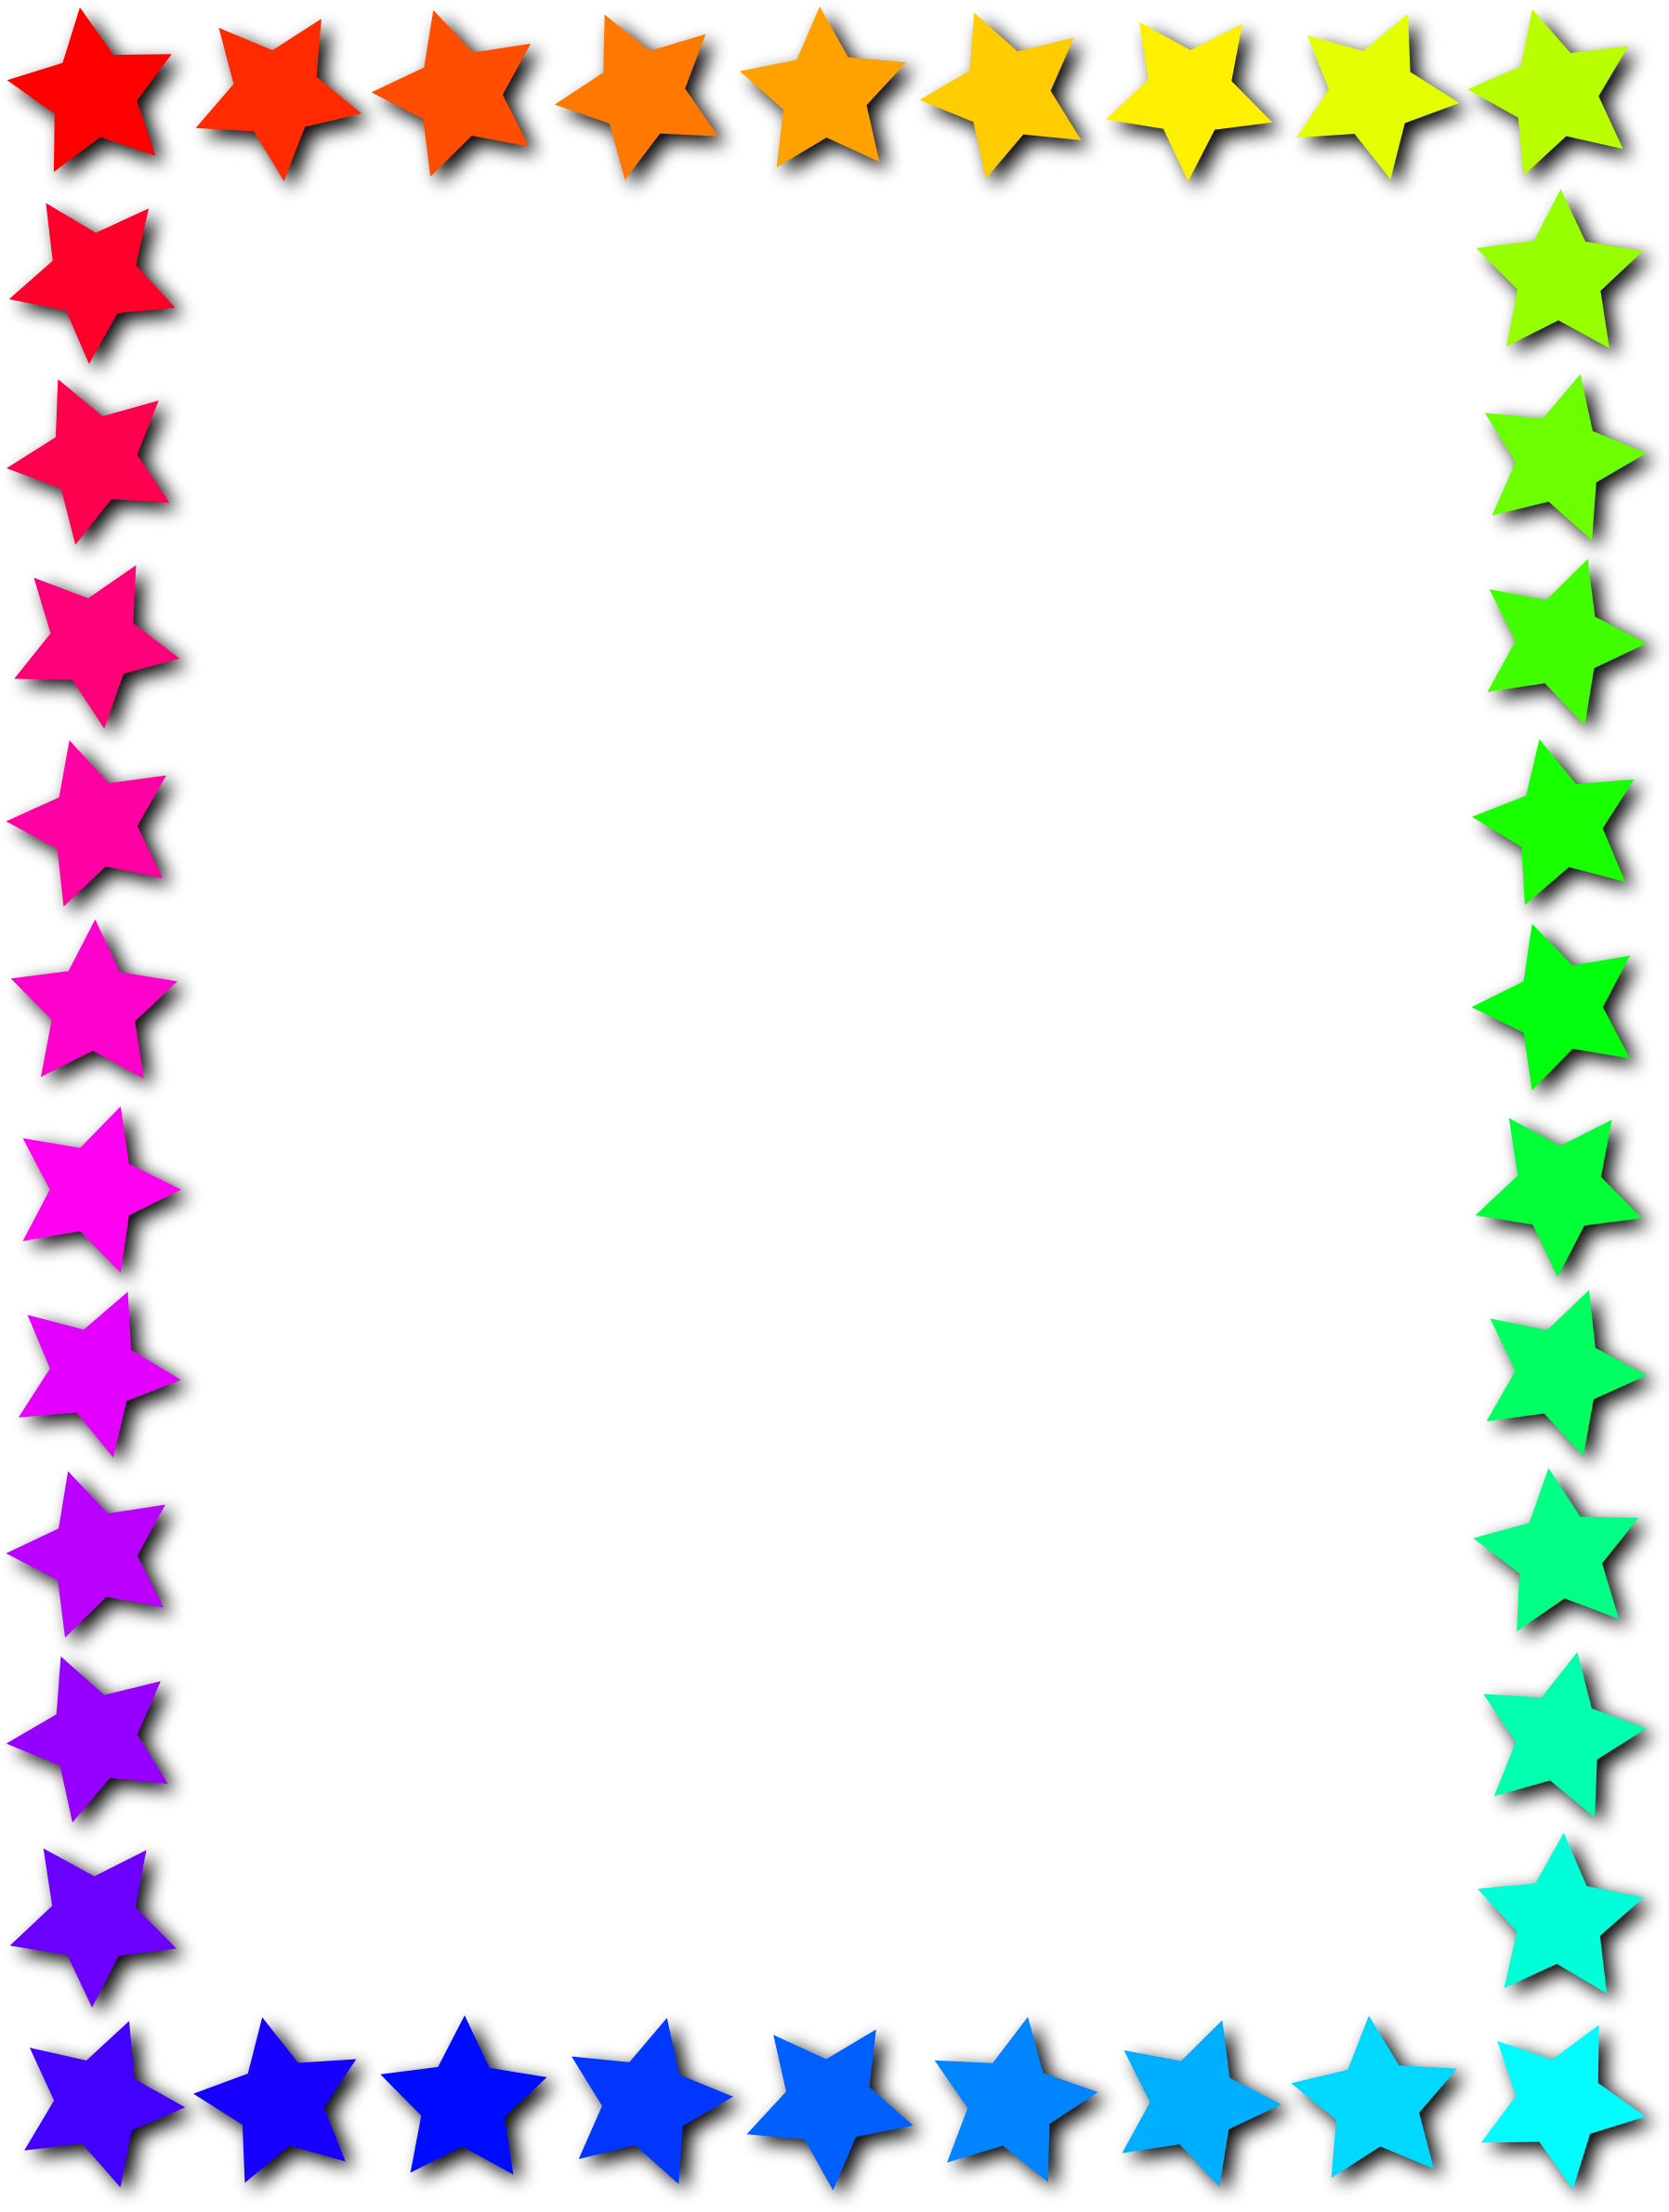 Star frame clipart free clip art library library star frame clipart starframe3 - Clip Art. Net clip art library library